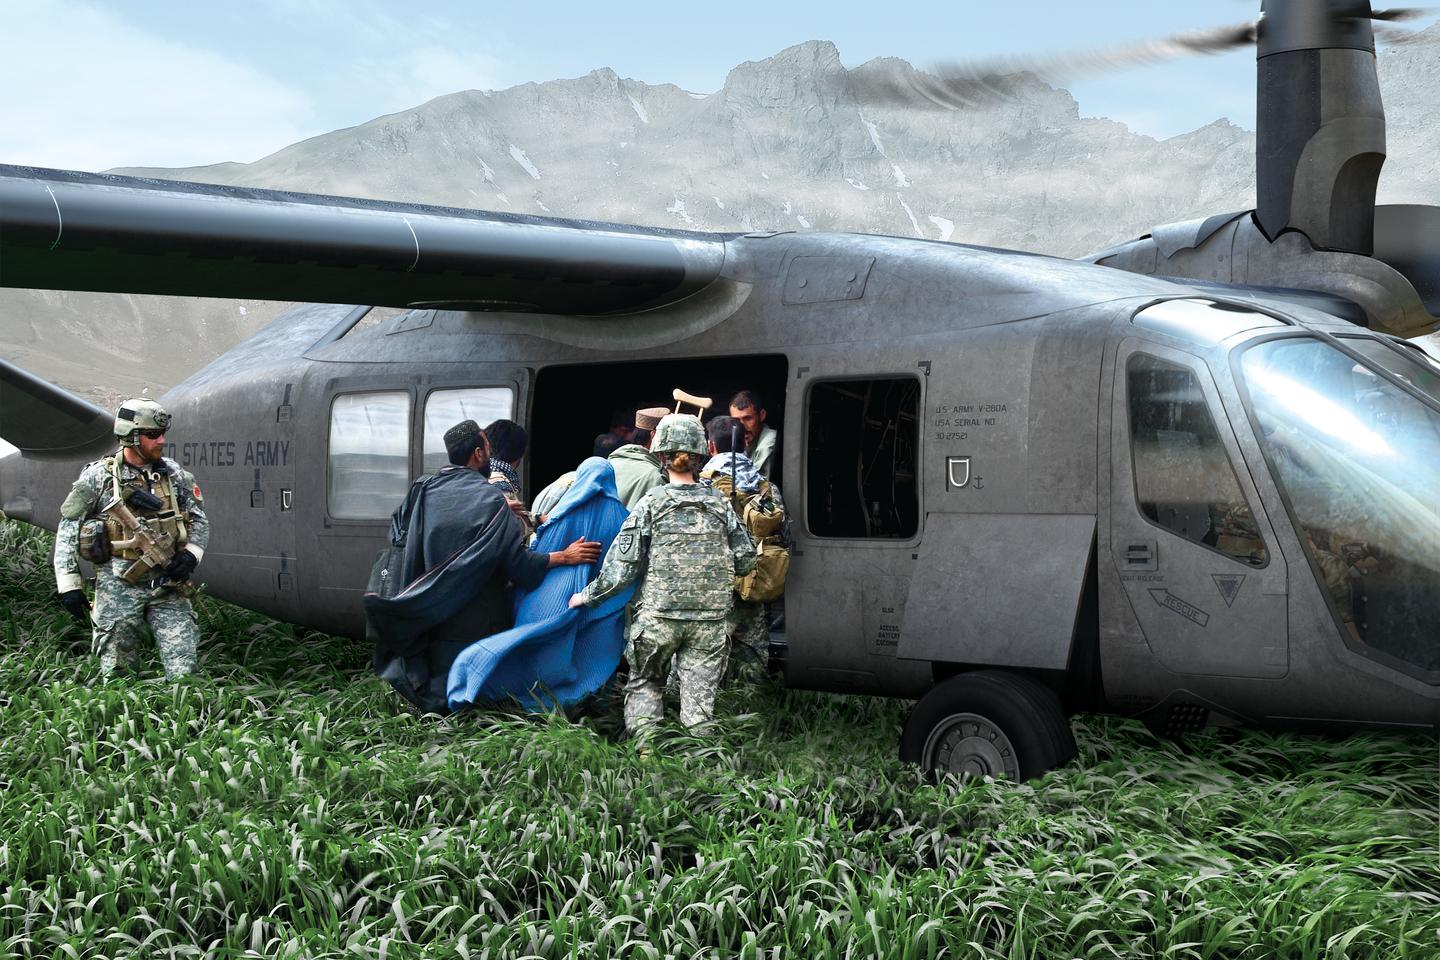 Rendering of the V-280 Valor in rescue operations